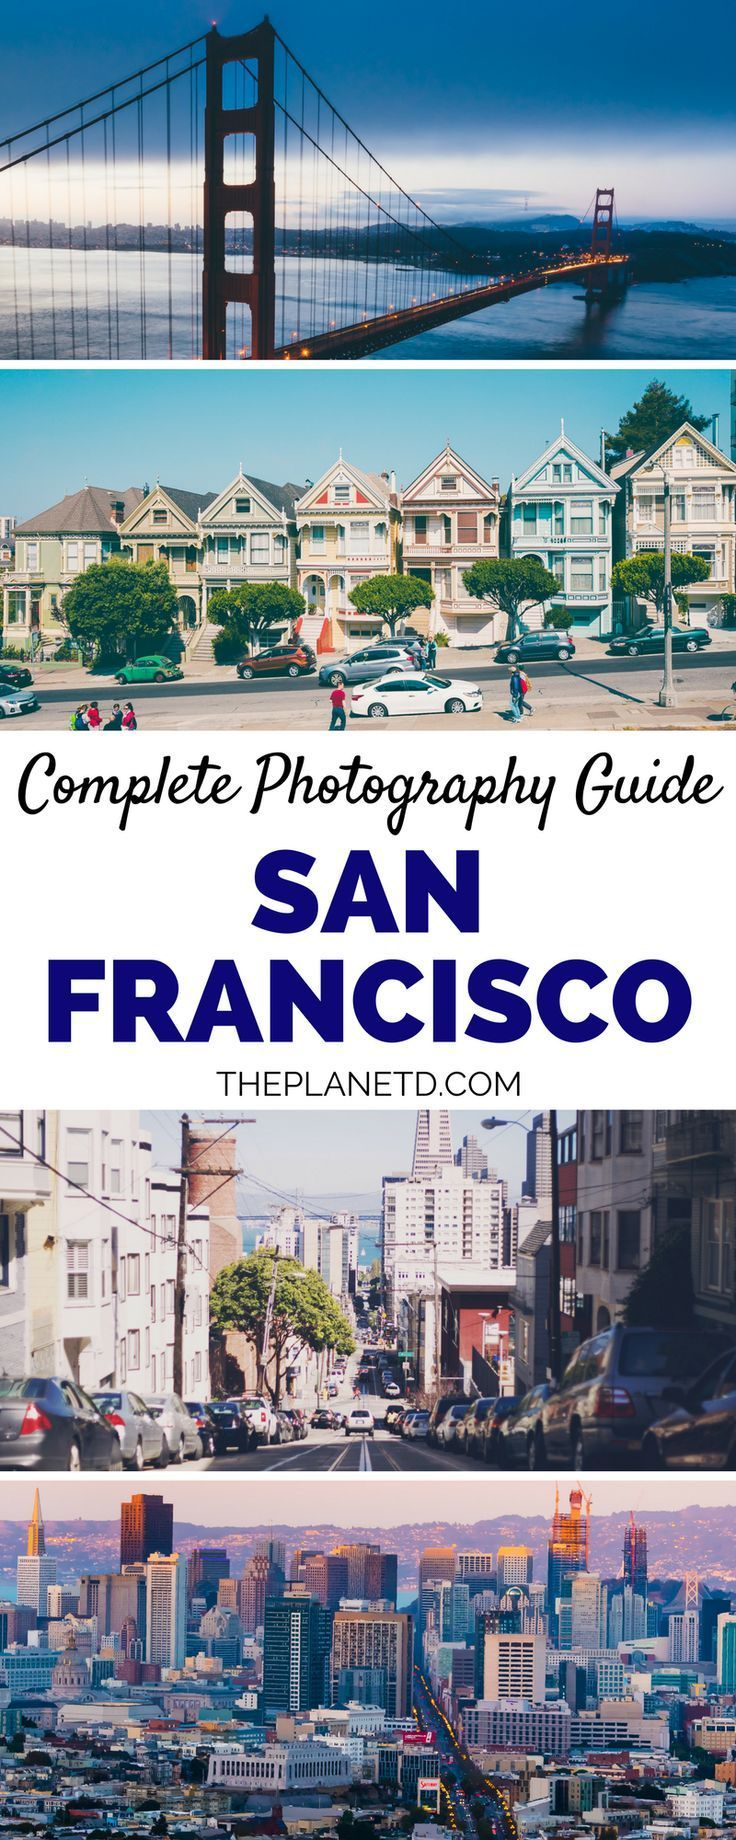 photo Gilt City Curator's Guide To San Francisco's MissionDistrict